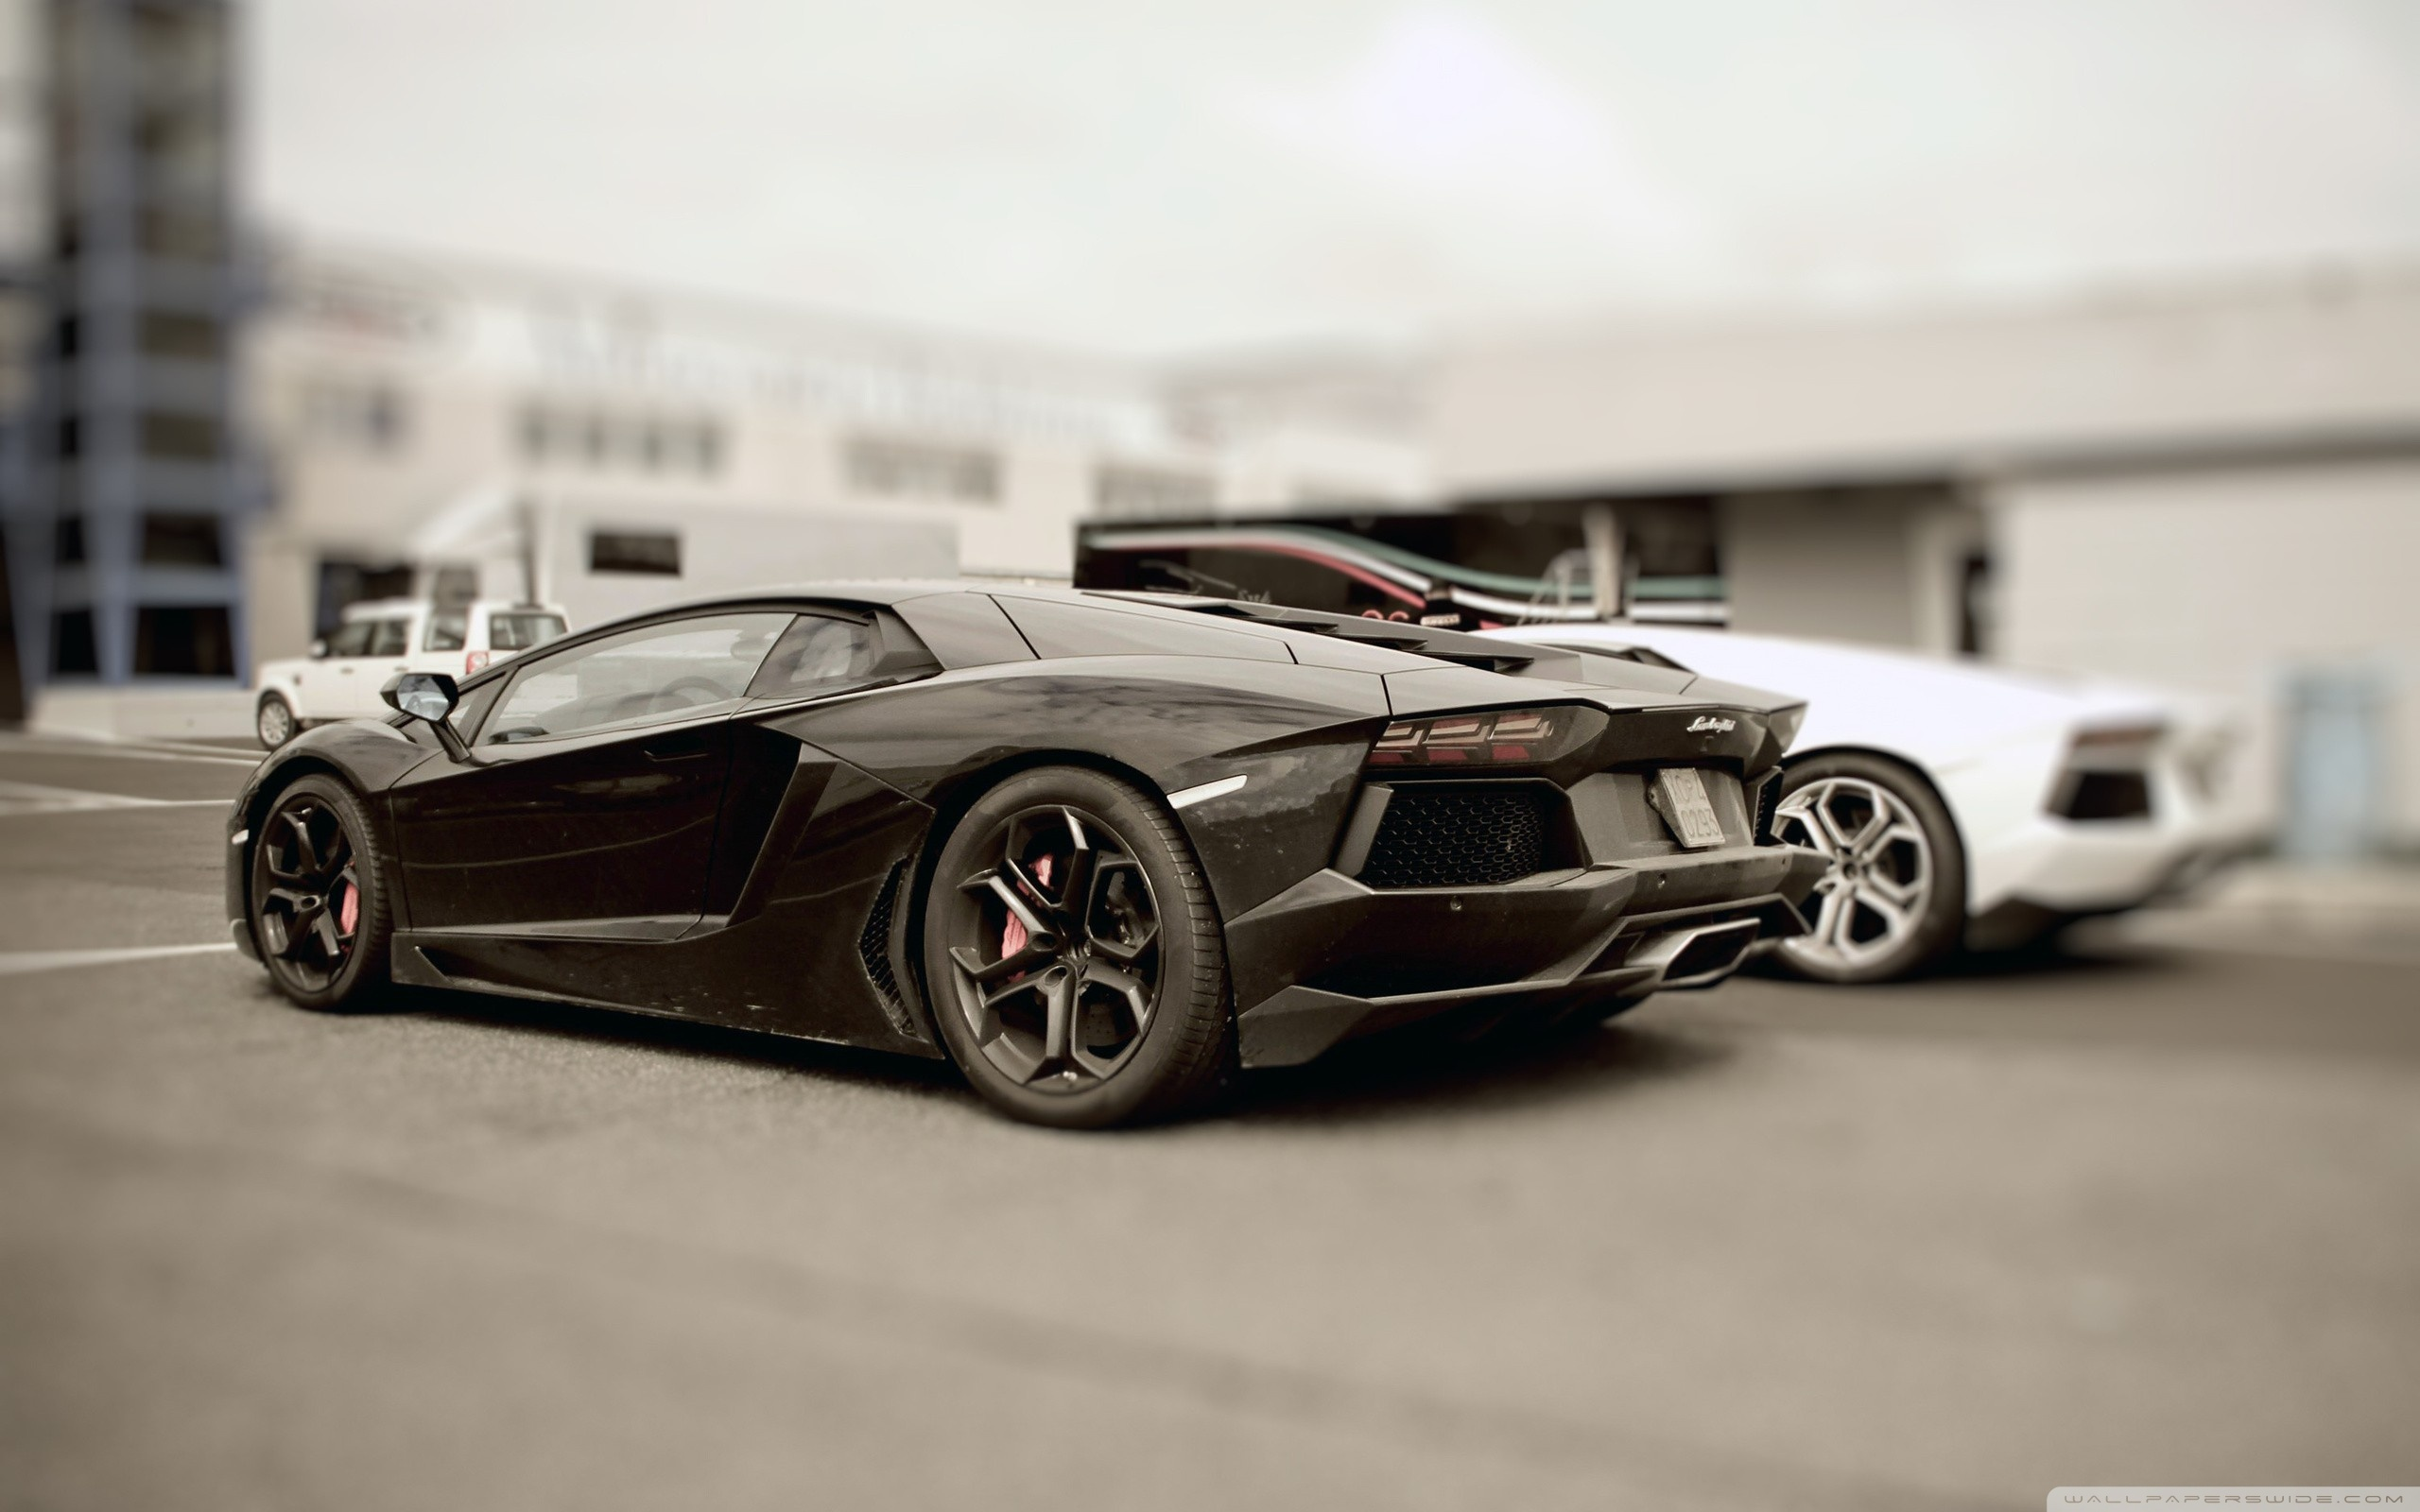 wallpaper-wallpaperswide-lamborghini-hd-desktop-wallpapers-for-lamborghini-aventador-wallpaper